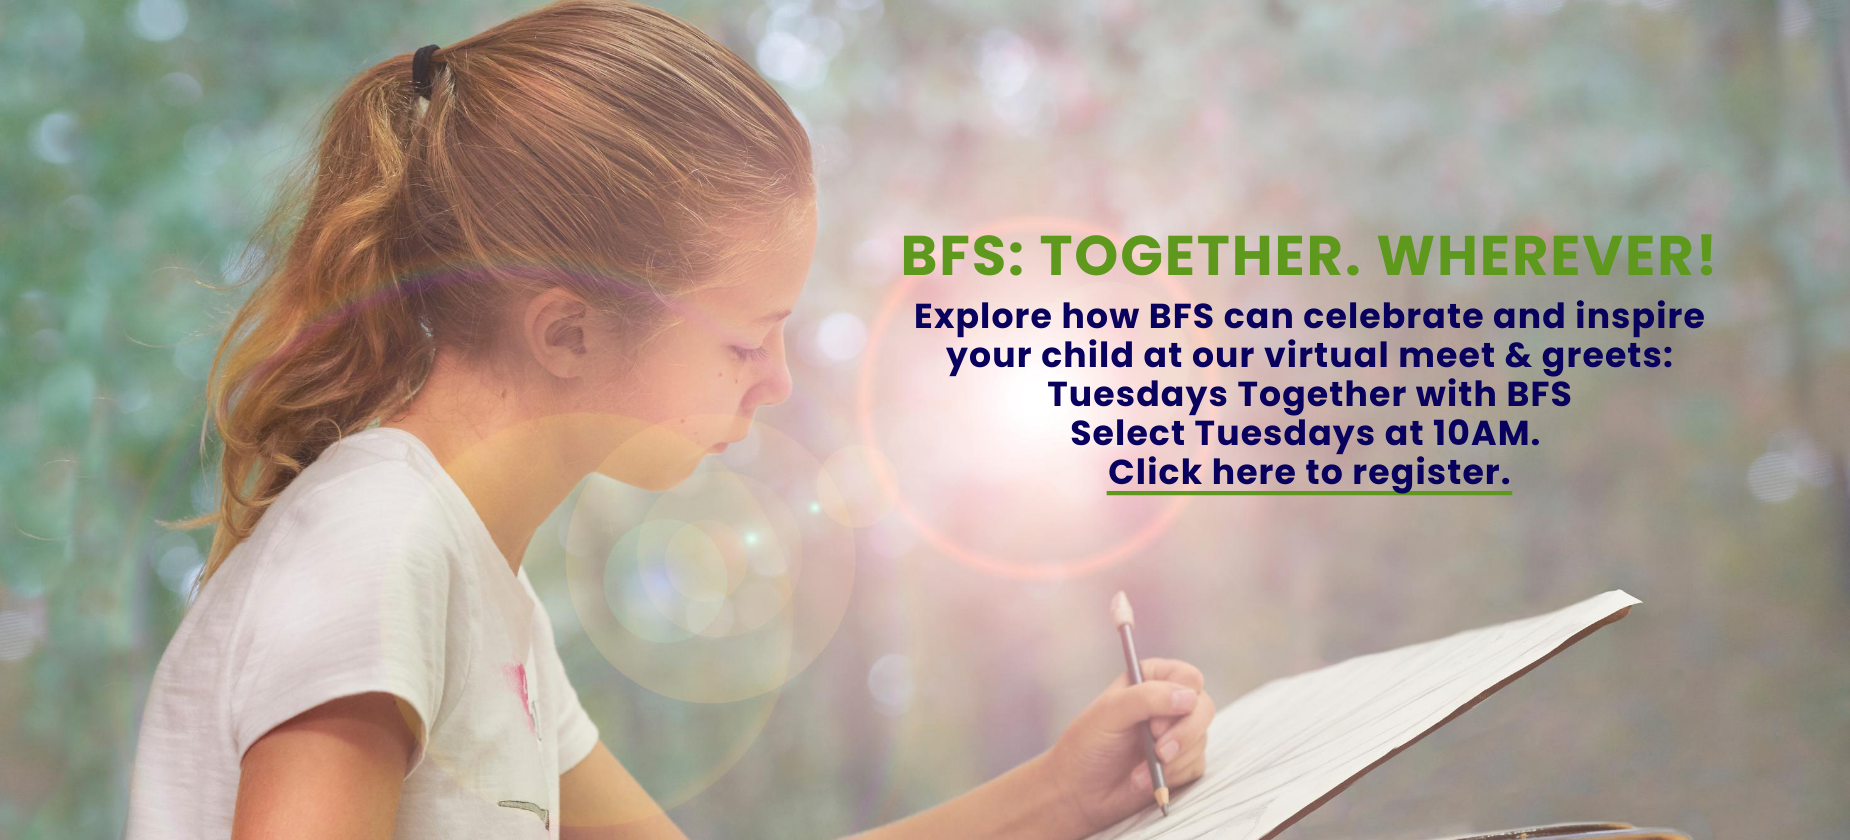 Tuesdays Together with BFS: Register today for a meet & greet to learn more about BFS.